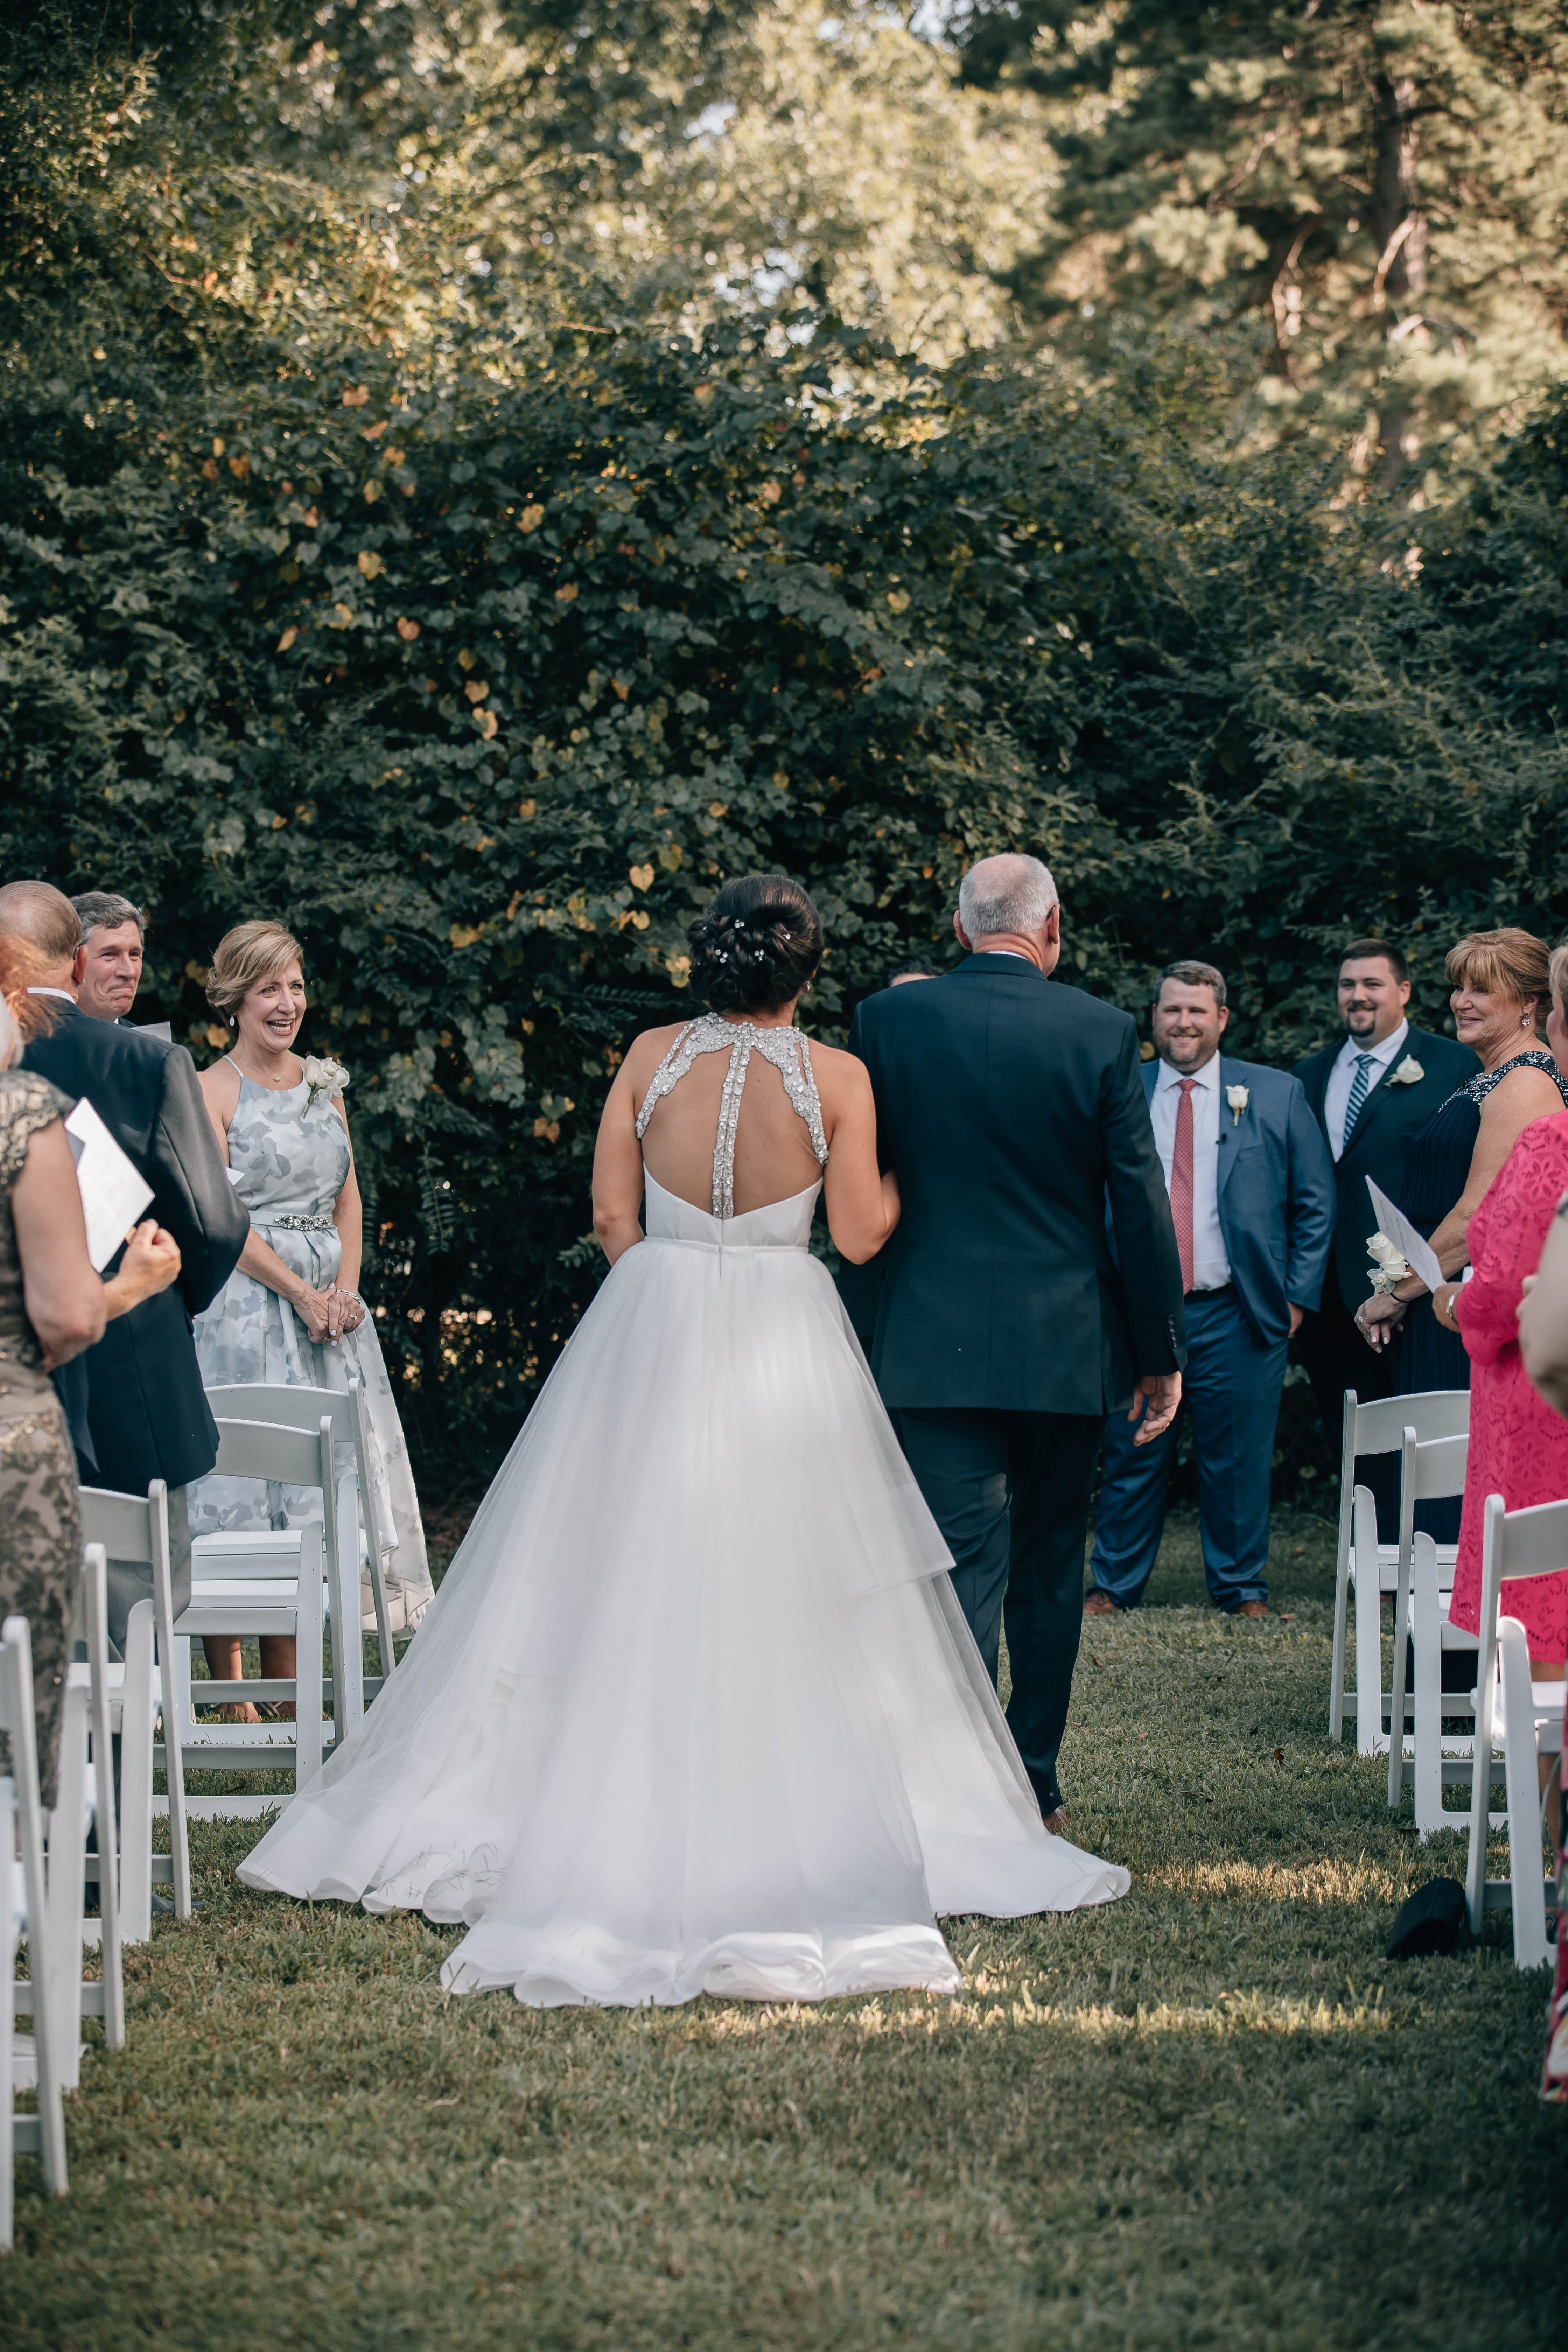 Bride is escorted down the aisle by her father to her ceremony at The Ivy Place designed and coordinated by Magnificent Moments Weddings